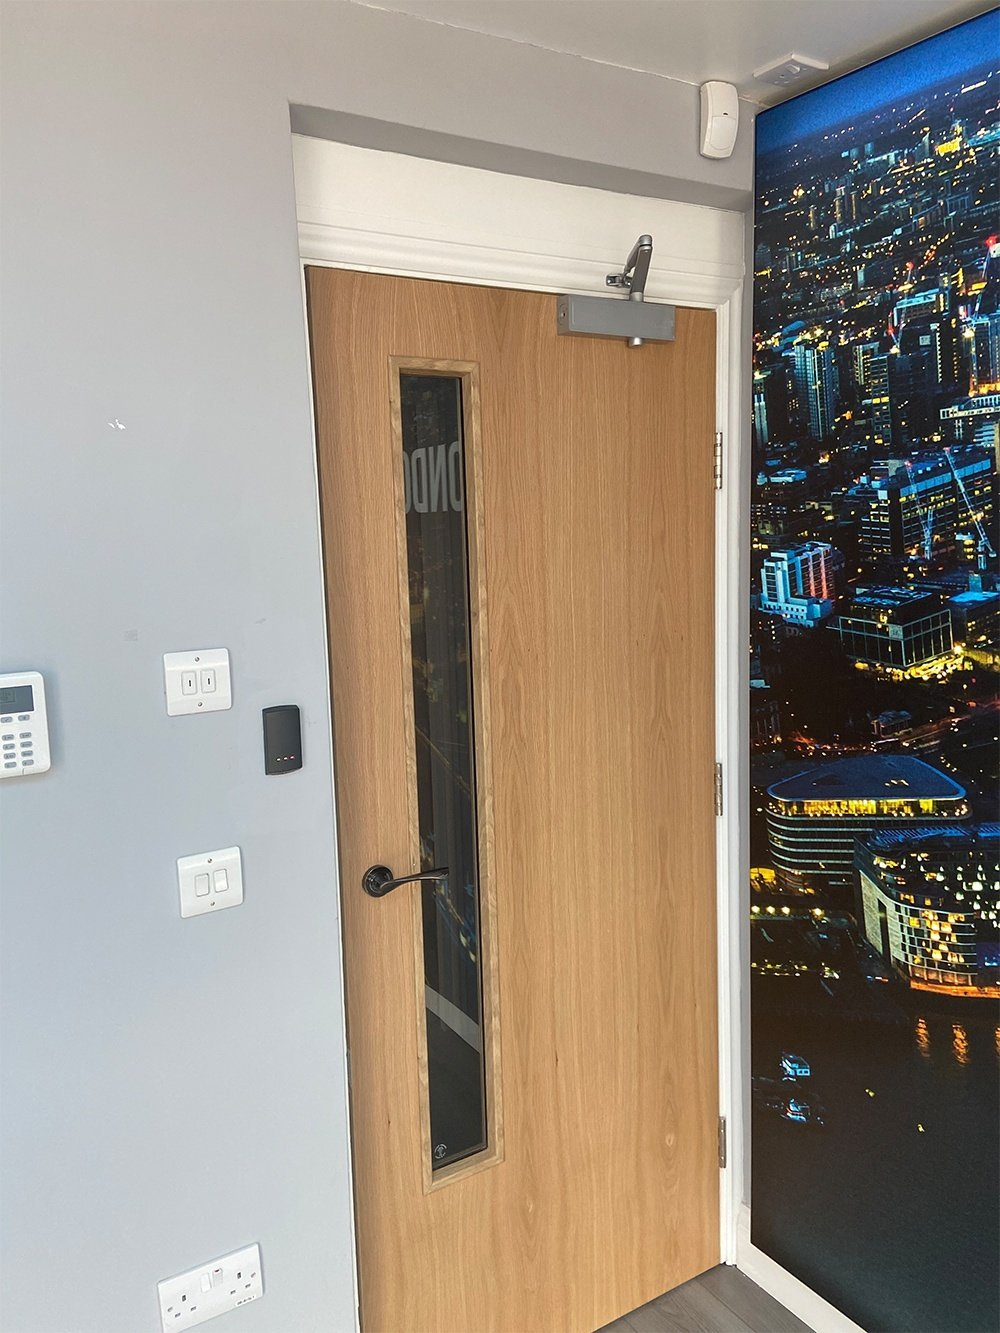 fire door by london city fire